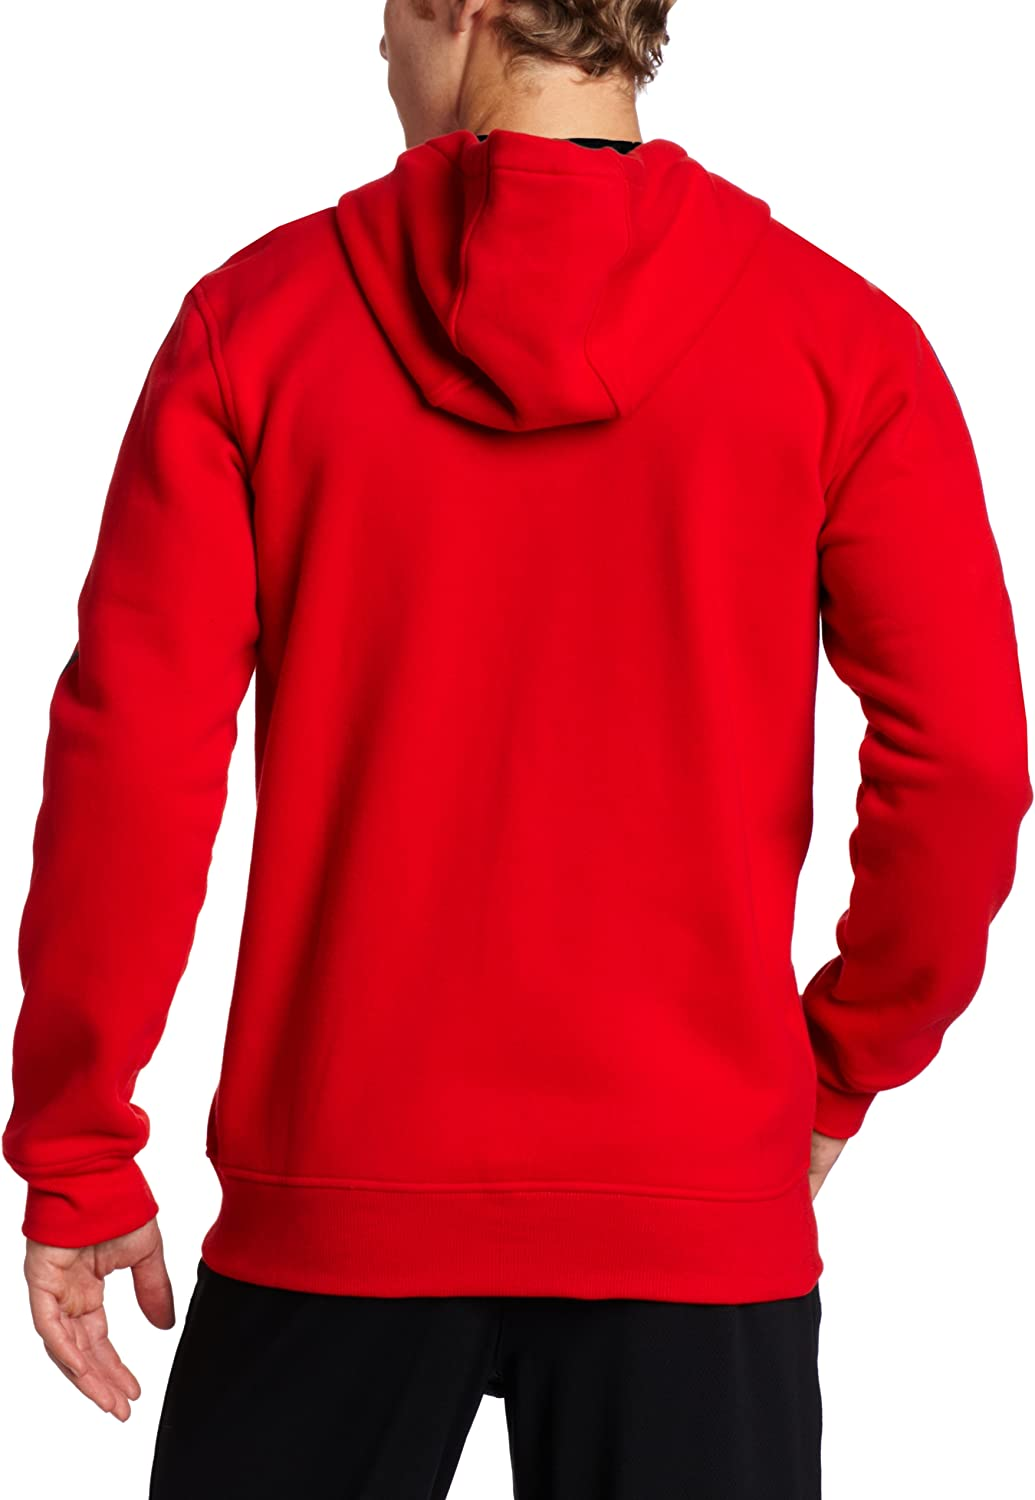 YIRONJERING Bauer 2020 Fashion Mens Polyester Hoodie